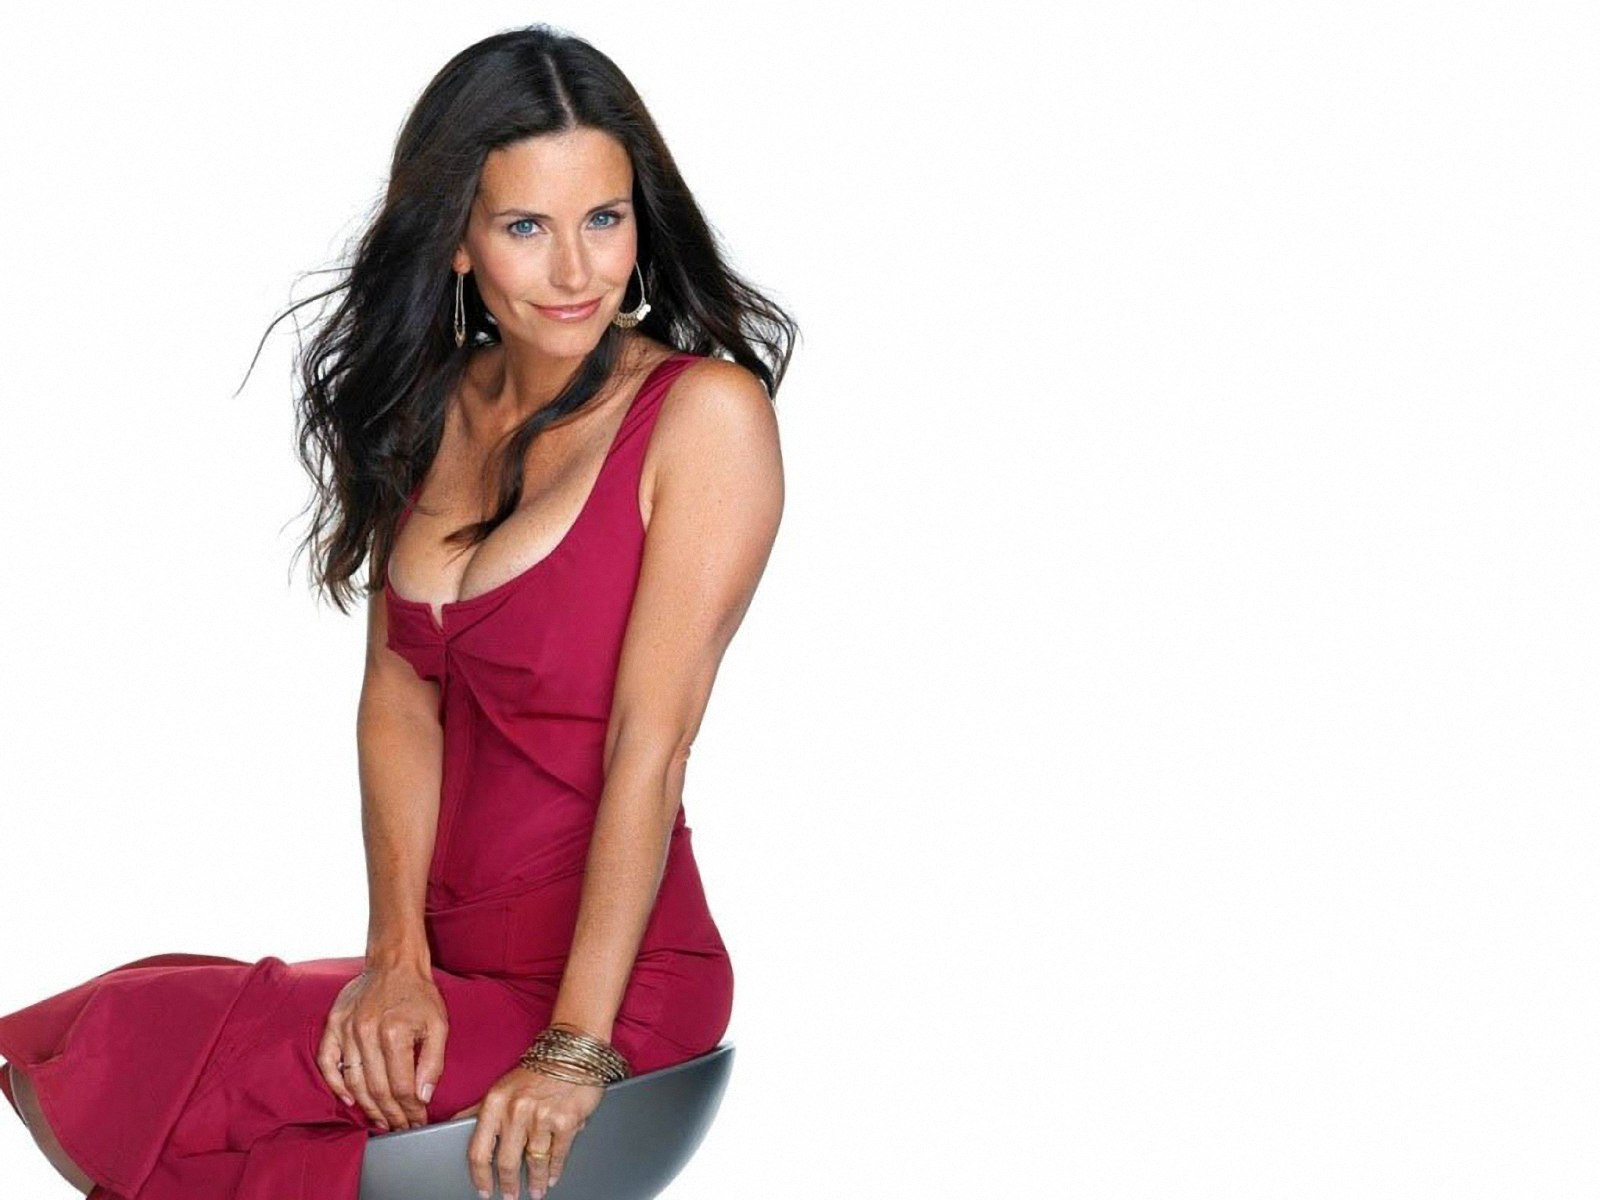 1600x1200 - Courtney Cox Wallpapers 8